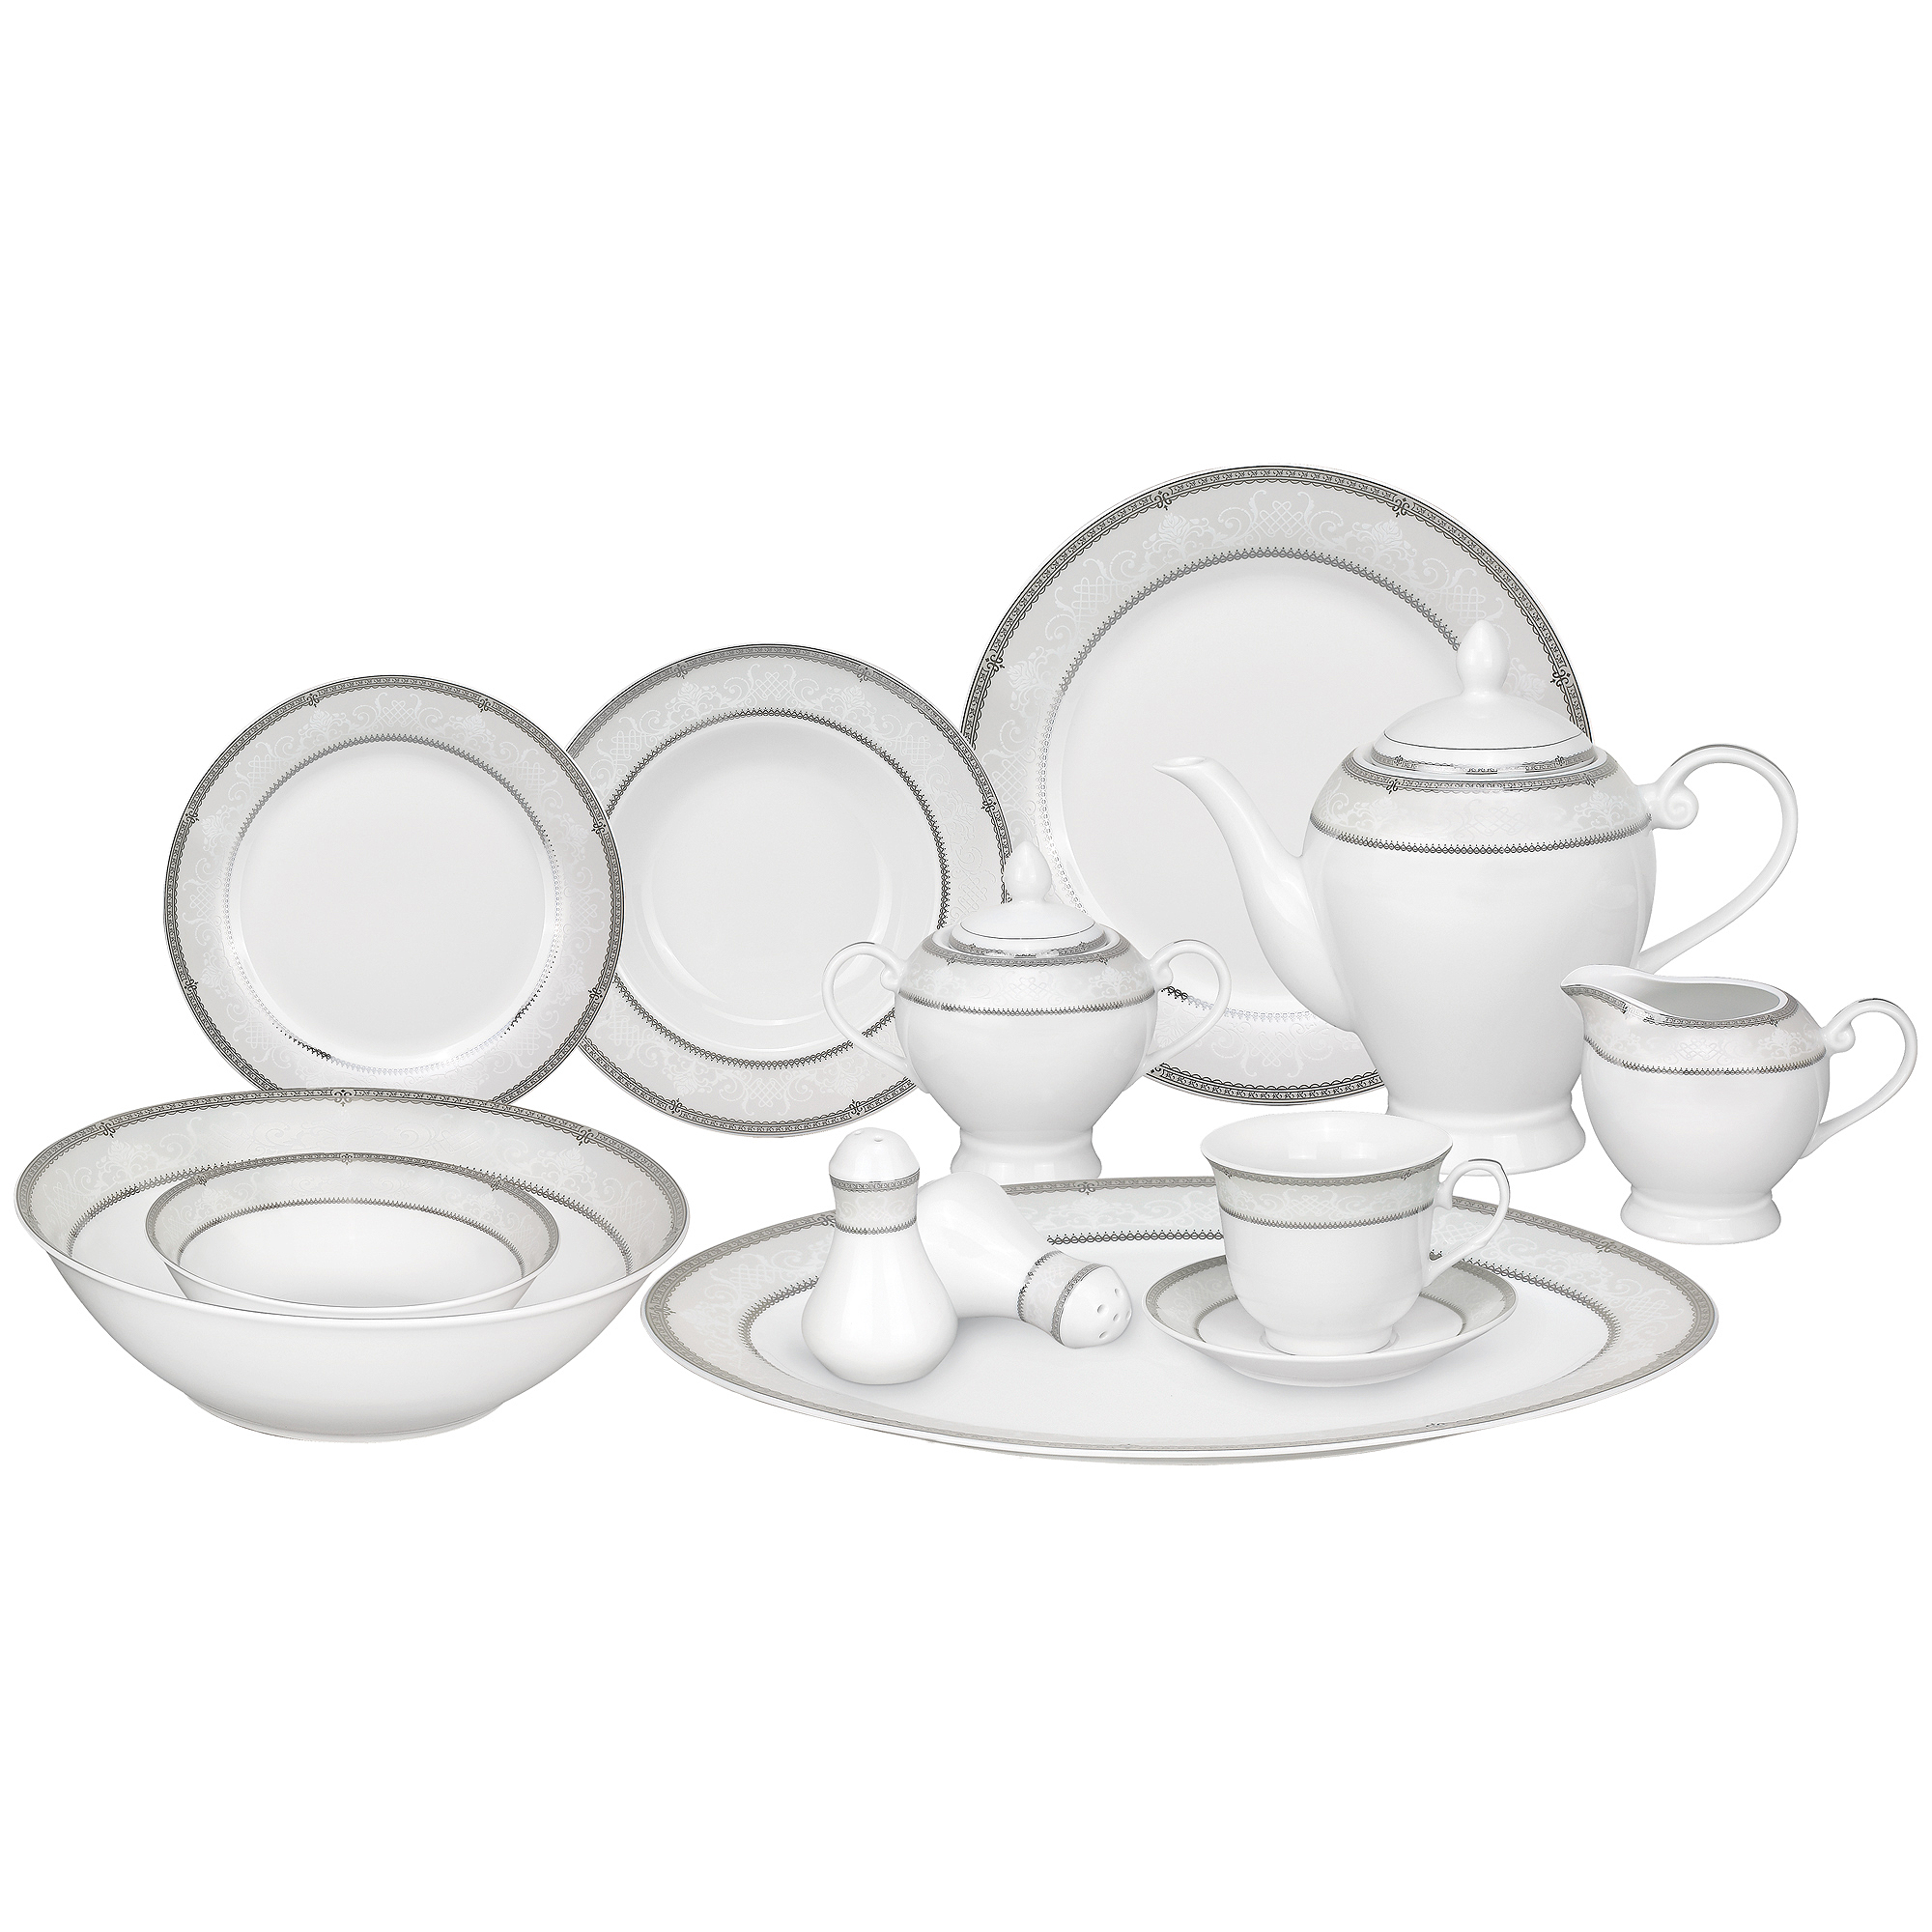 57 Piece Dinnerware